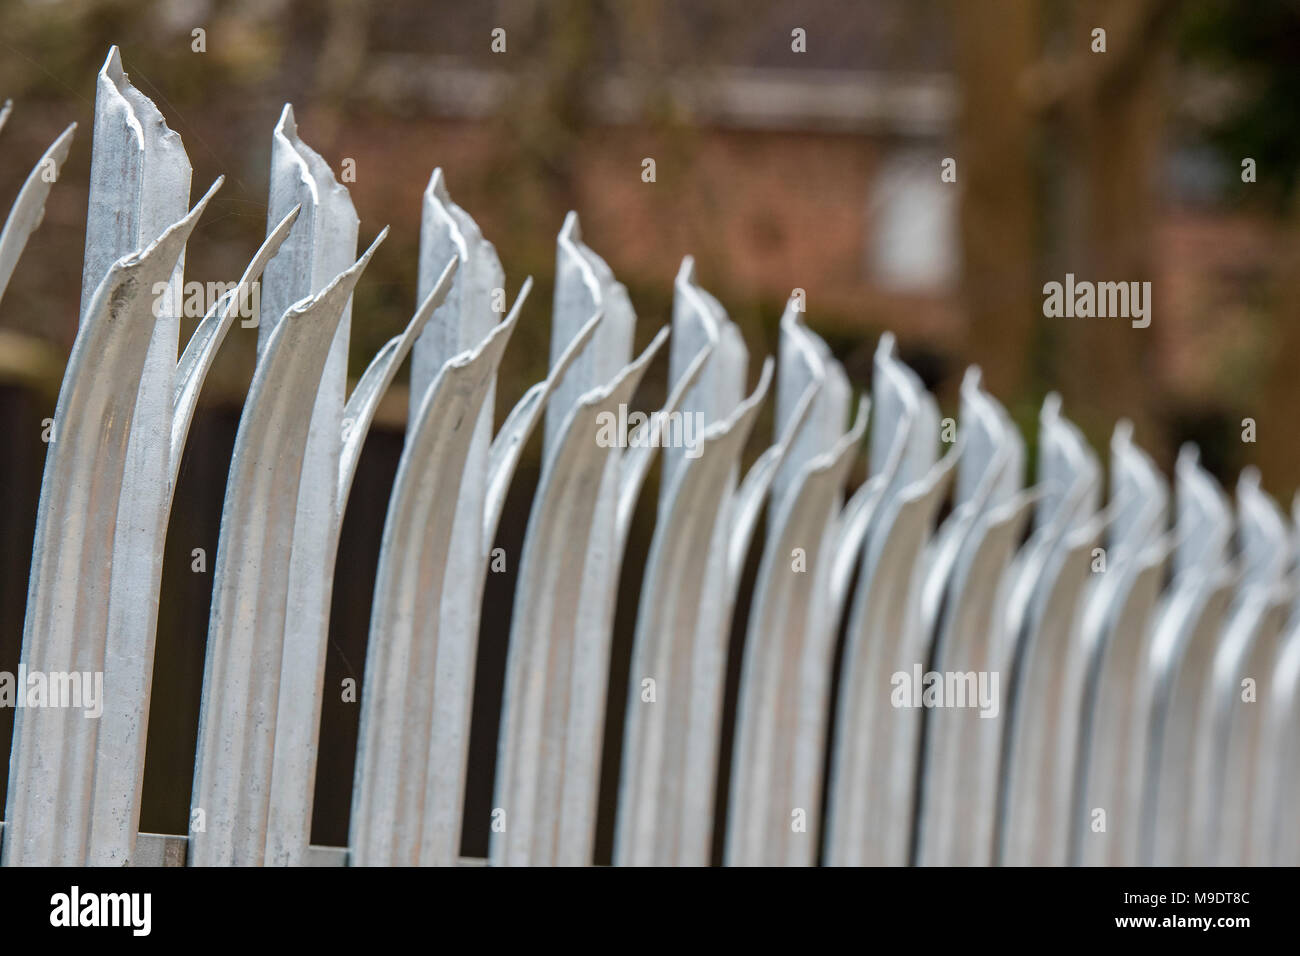 razor sharp palisade security fencing surrounding private property. security measures and fencing for protection and surrounding secure and securing. - Stock Image